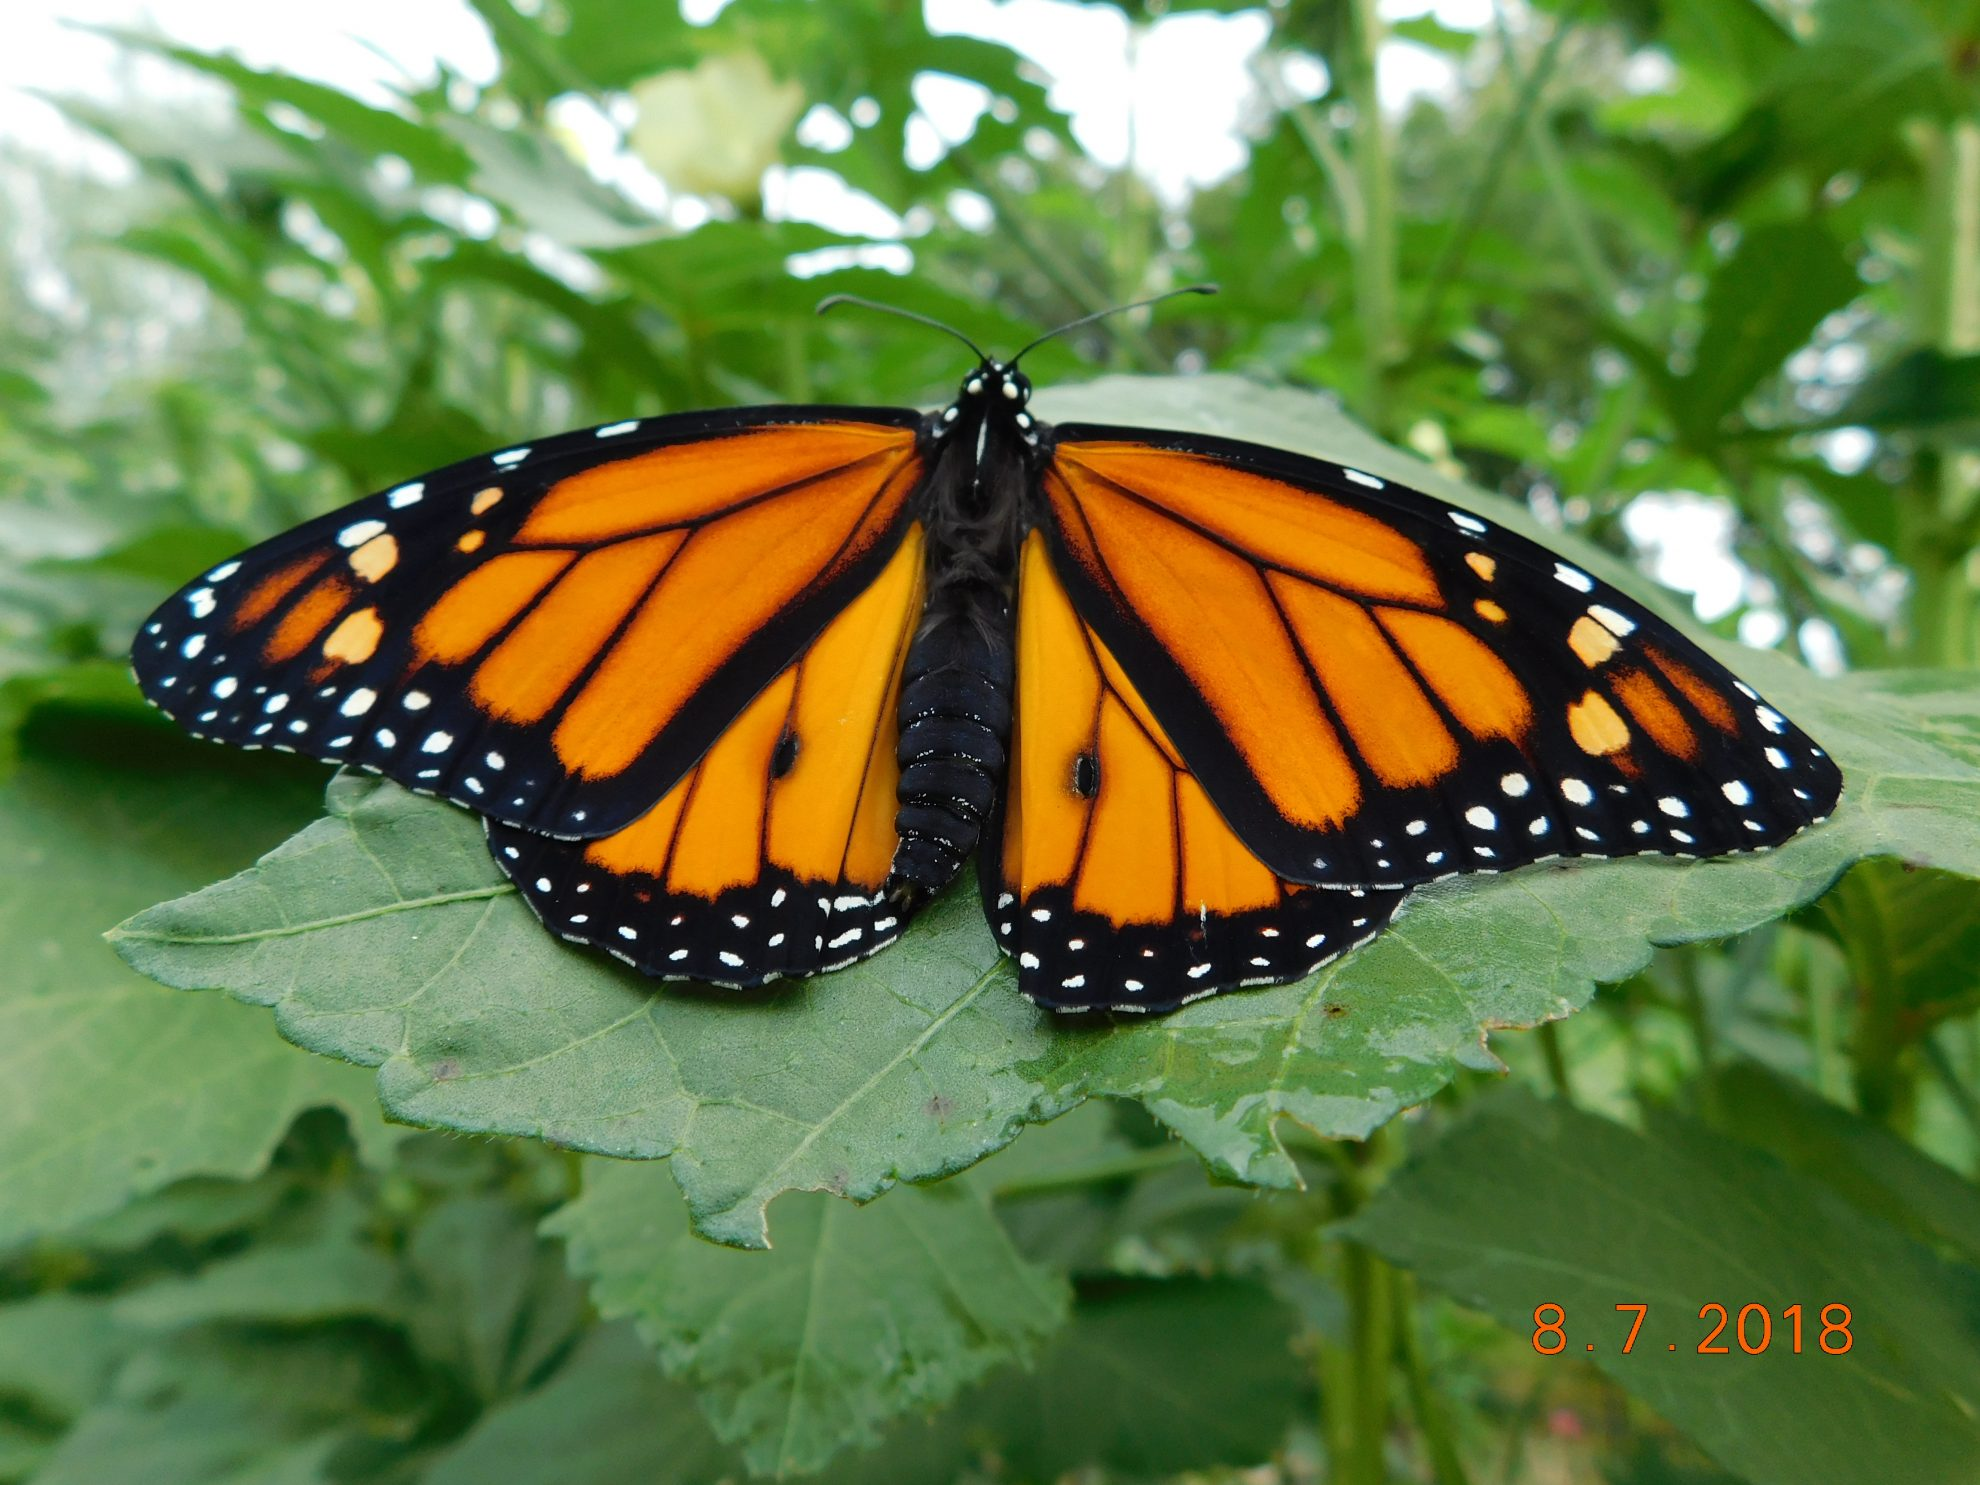 Butterflies are good for more than justbeauty, they are one of the best pollinators for your garden. Check out how to attract butterflies to your garden.